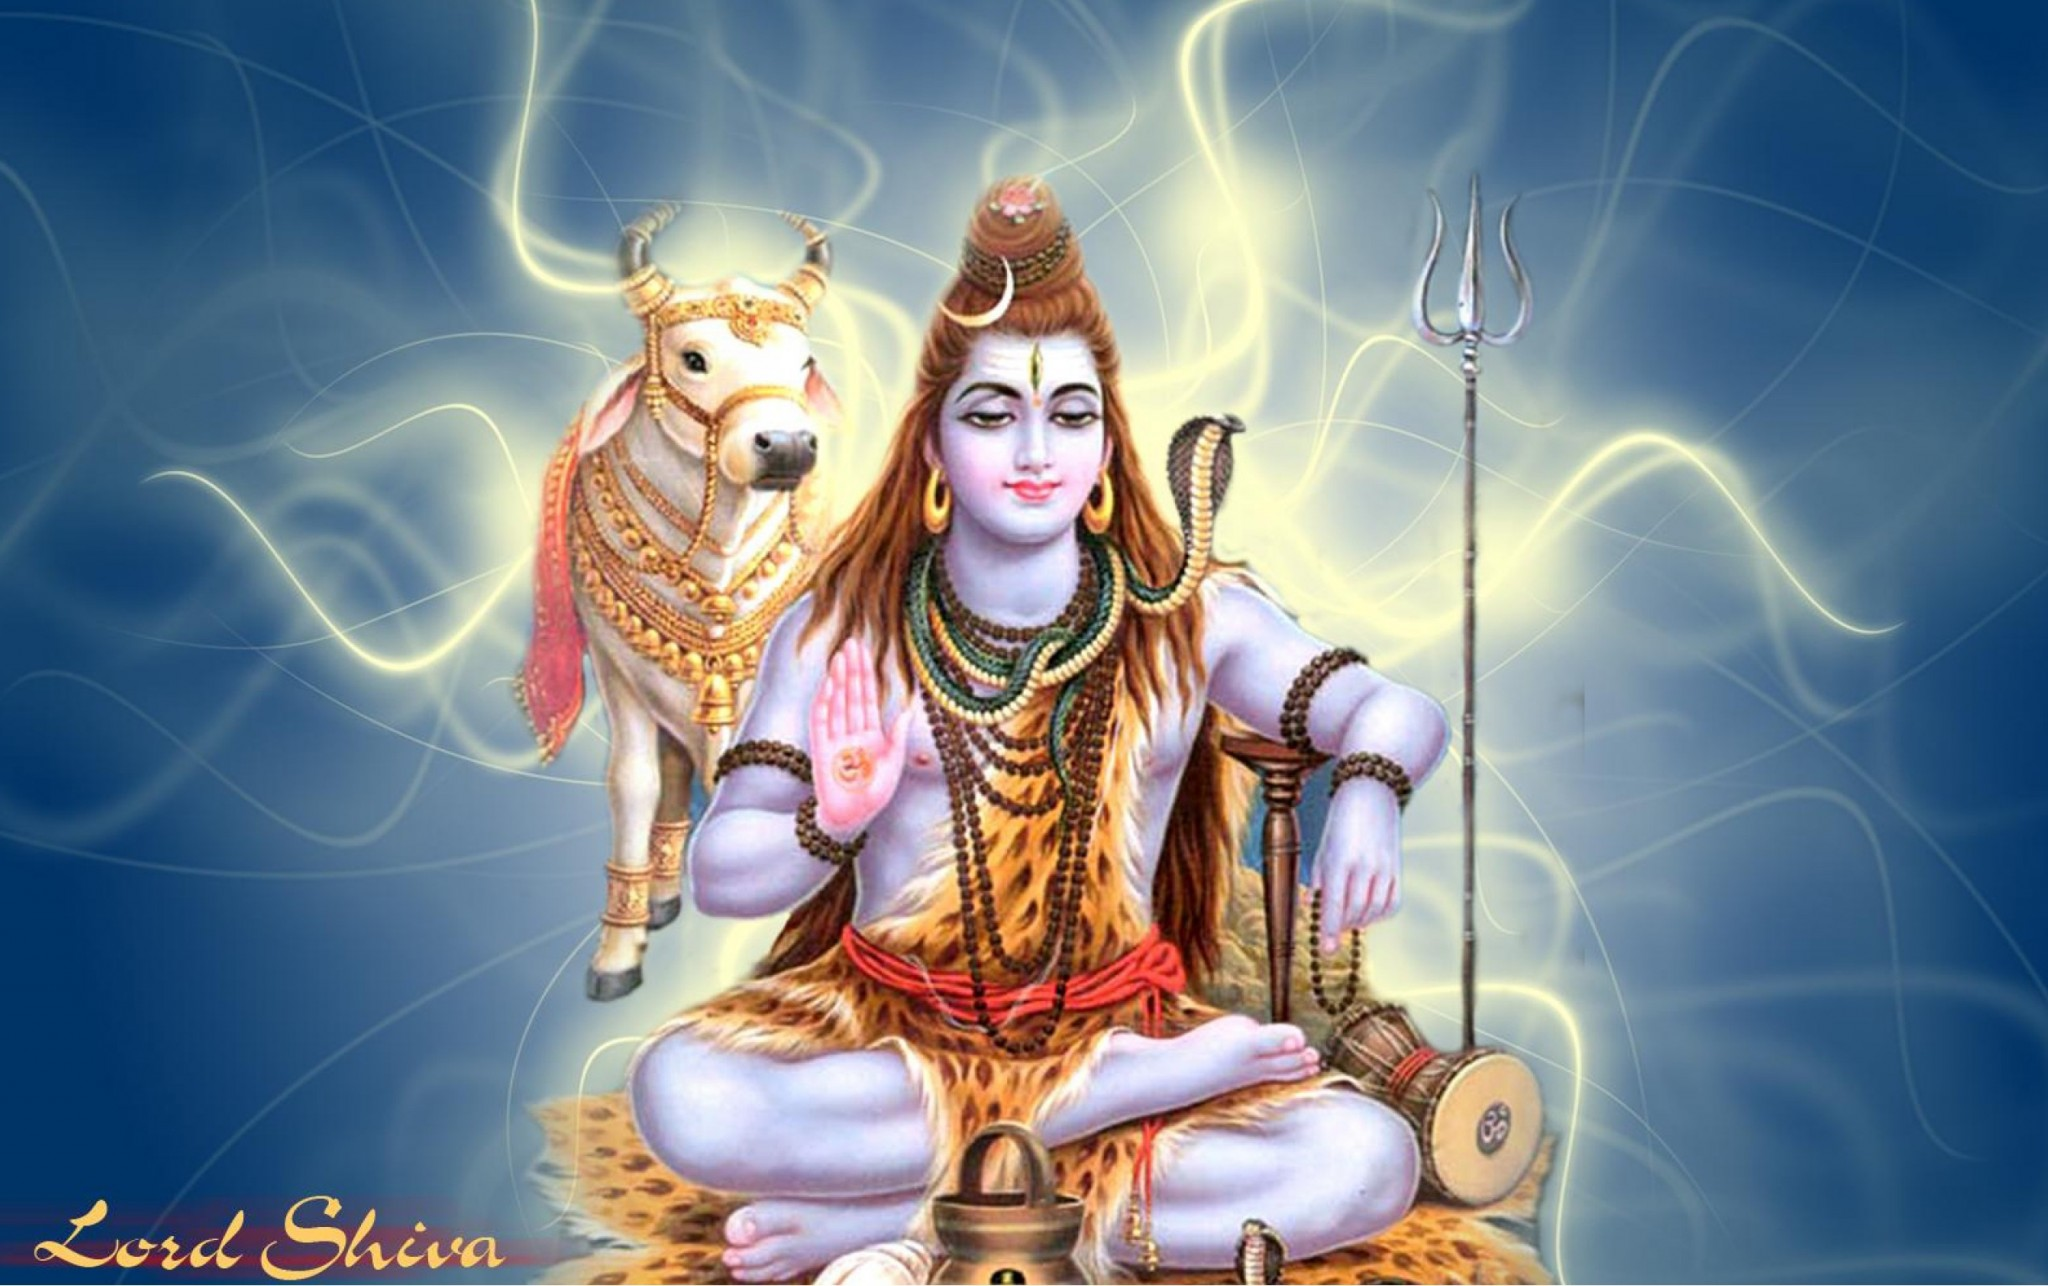 835 Lord Shiva Images Wallpapers God Shiva Photos In Hd Quality